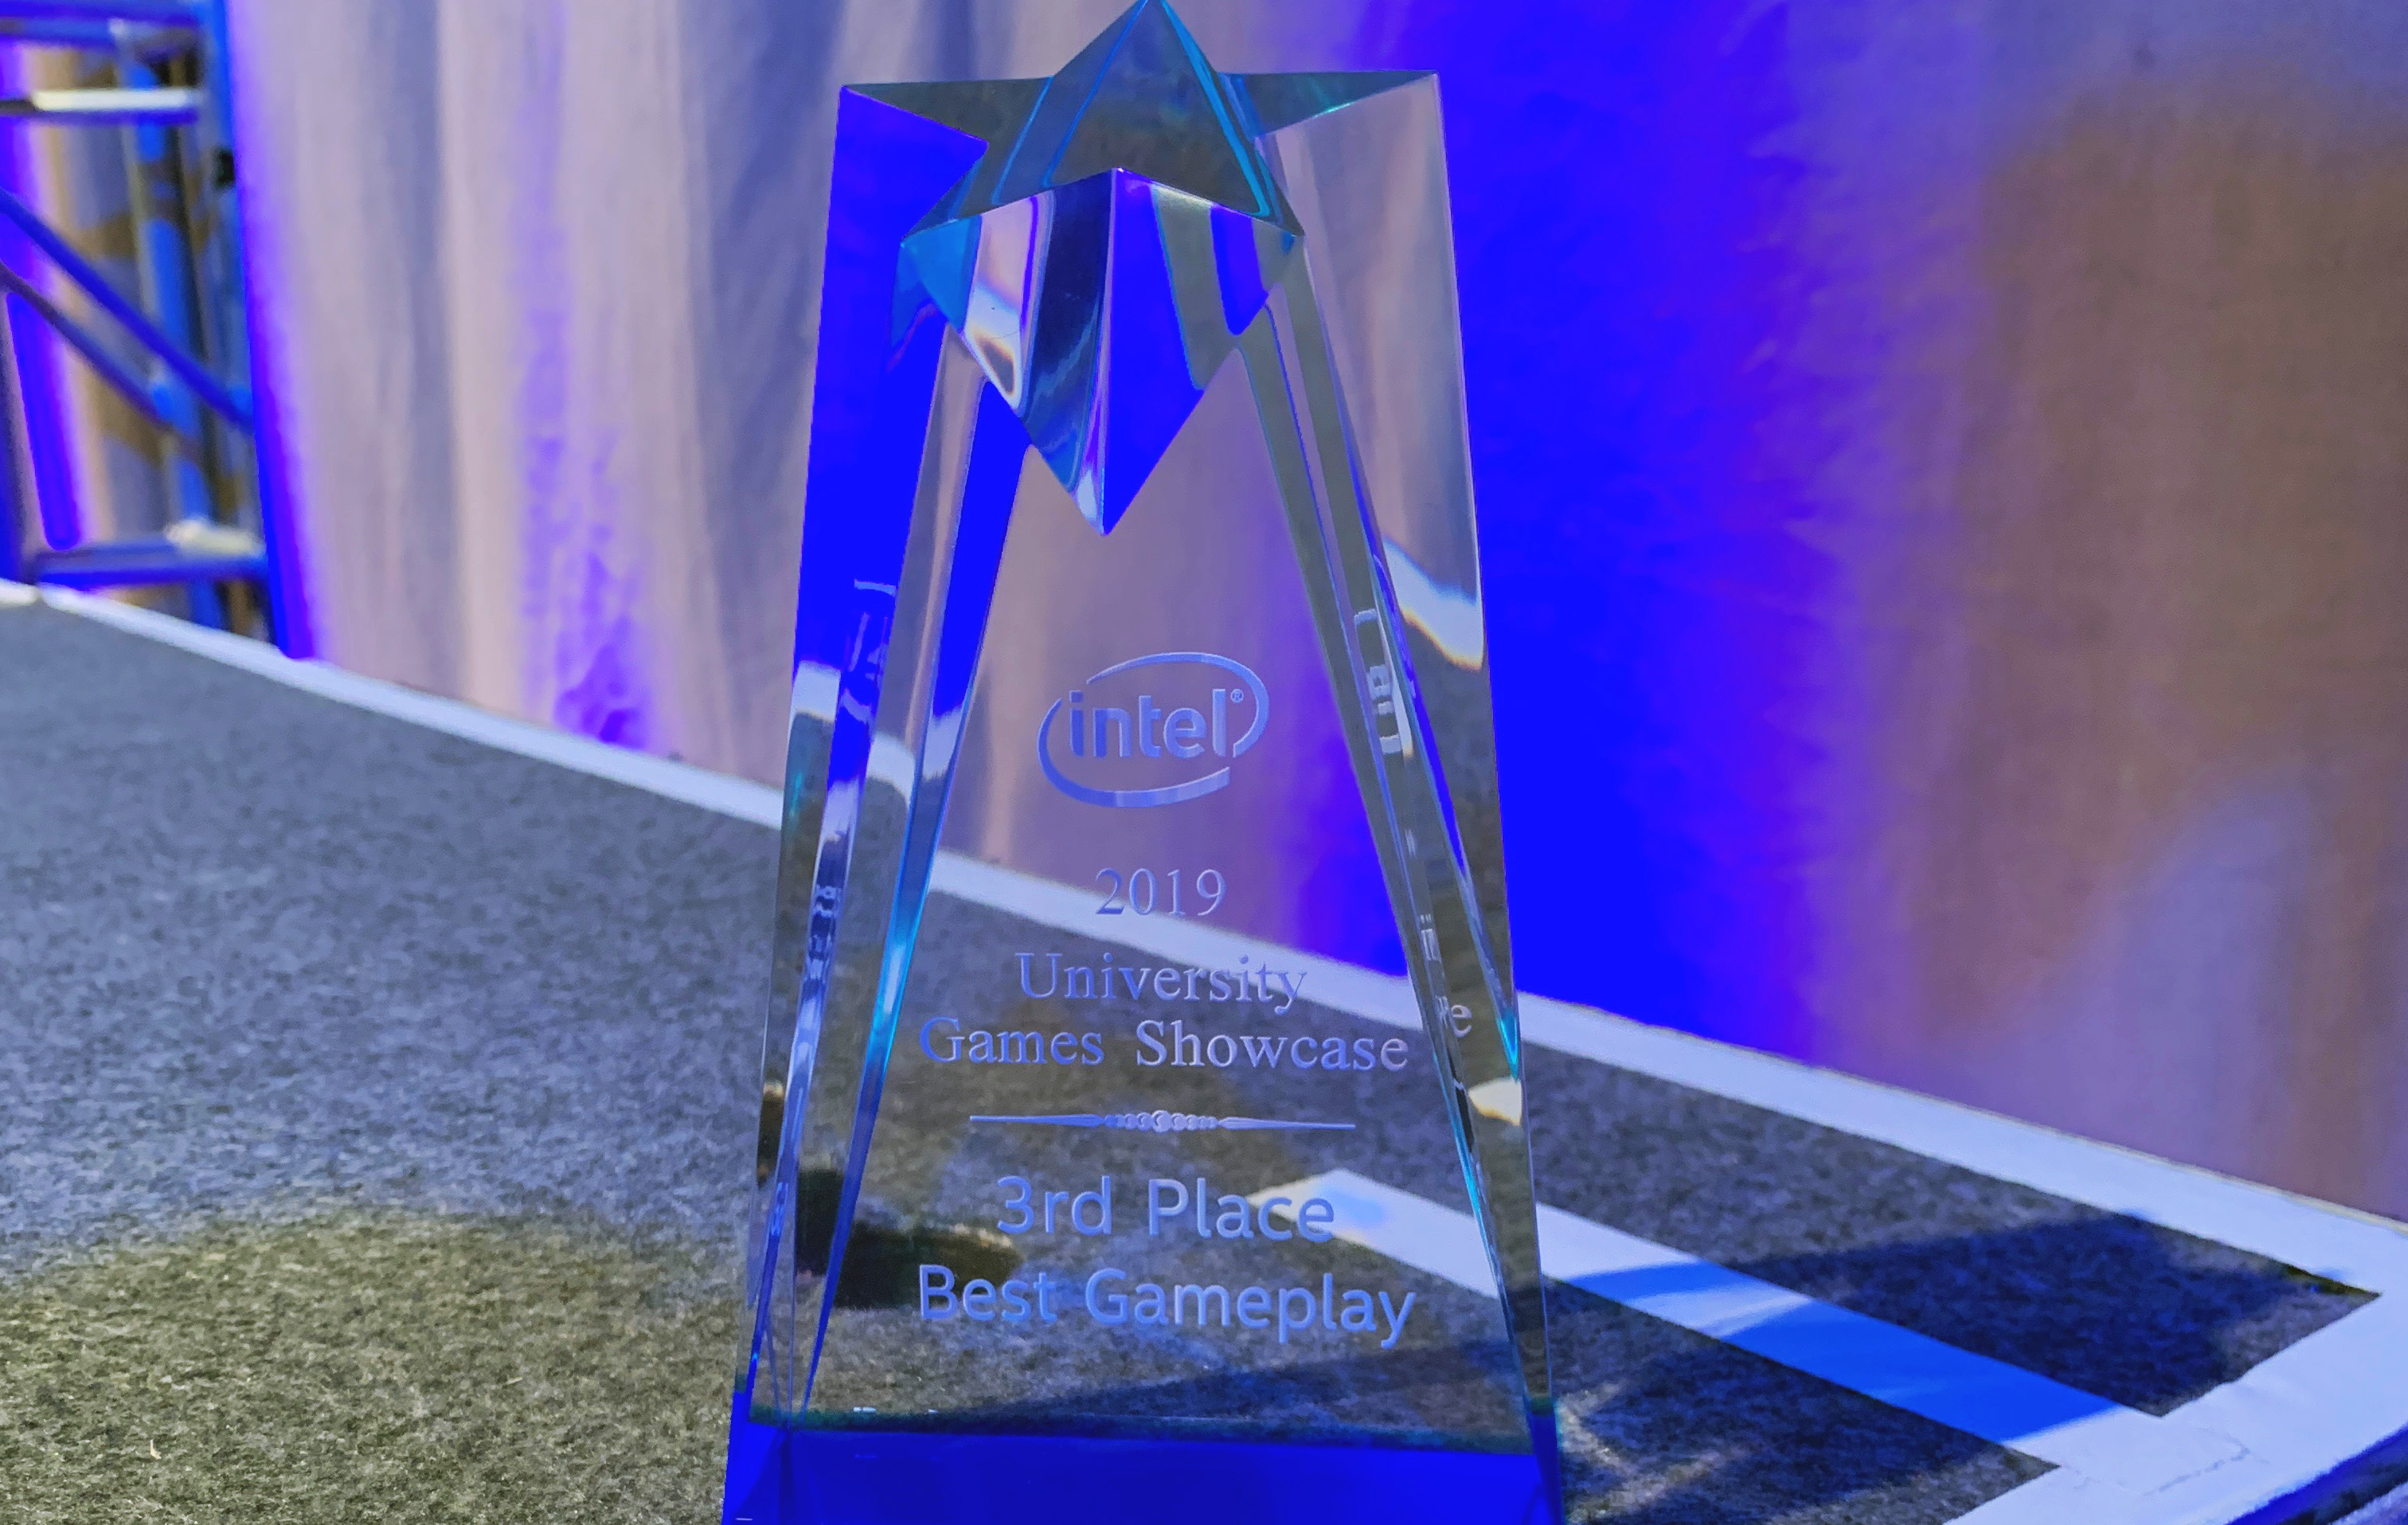 SMU Guildhall takes 7th win in 6 years at Intel University Games Showcase